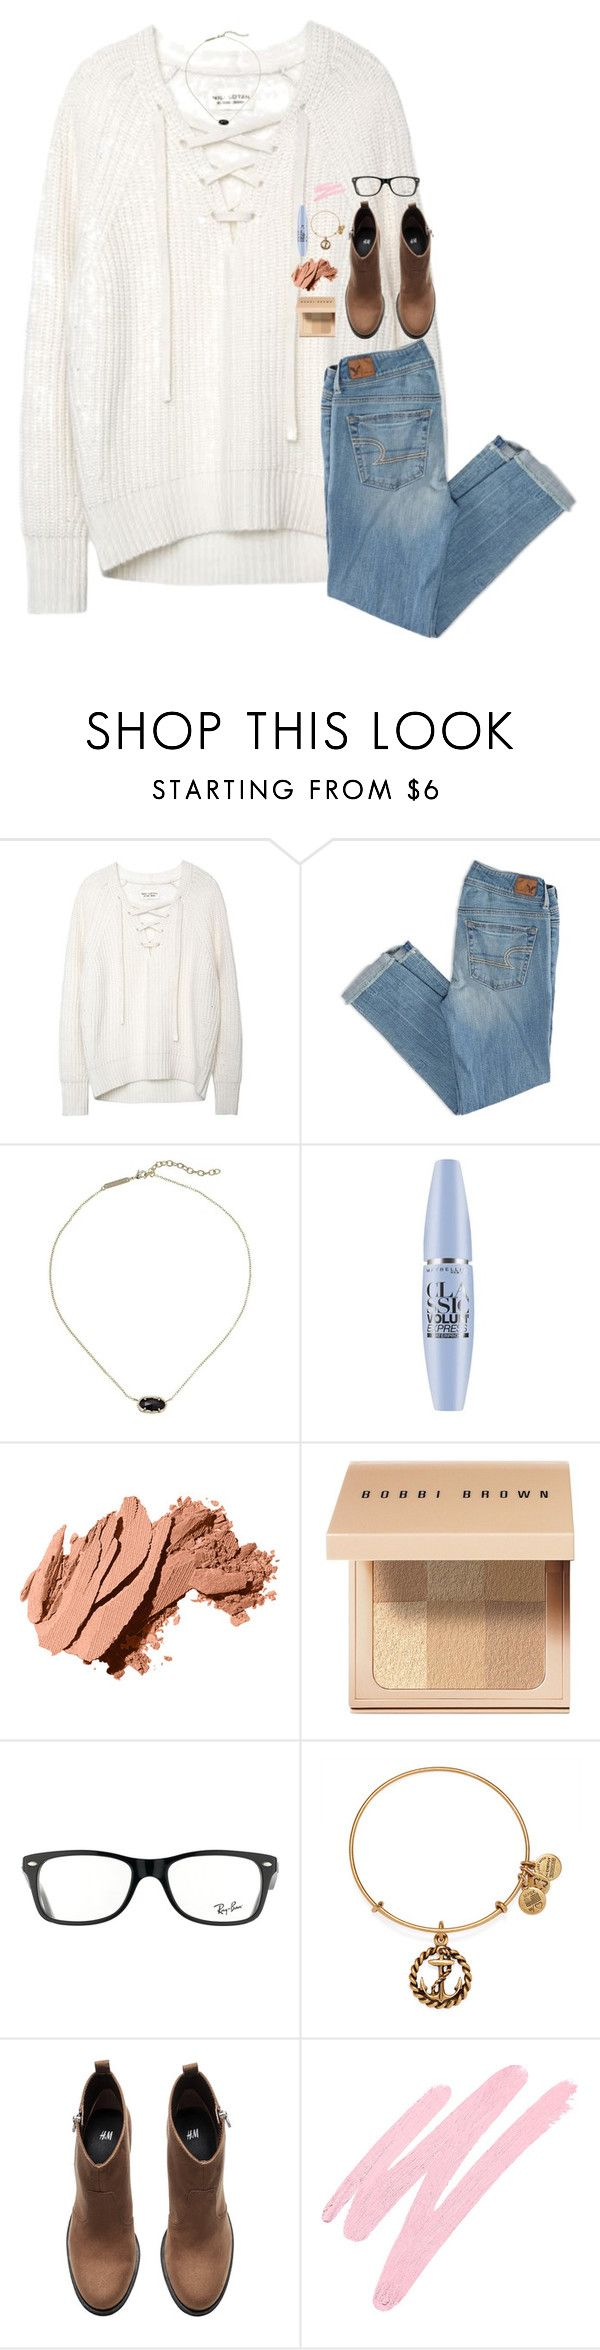 """""""starboy"""" by hailstails ❤ liked on Polyvore featuring American Eagle Outfitters, Kendra Scott, Maybelline, Bobbi Brown Cosmetics, Ray-Ban, Alex and Ani, H&M and NARS Cosmetics"""